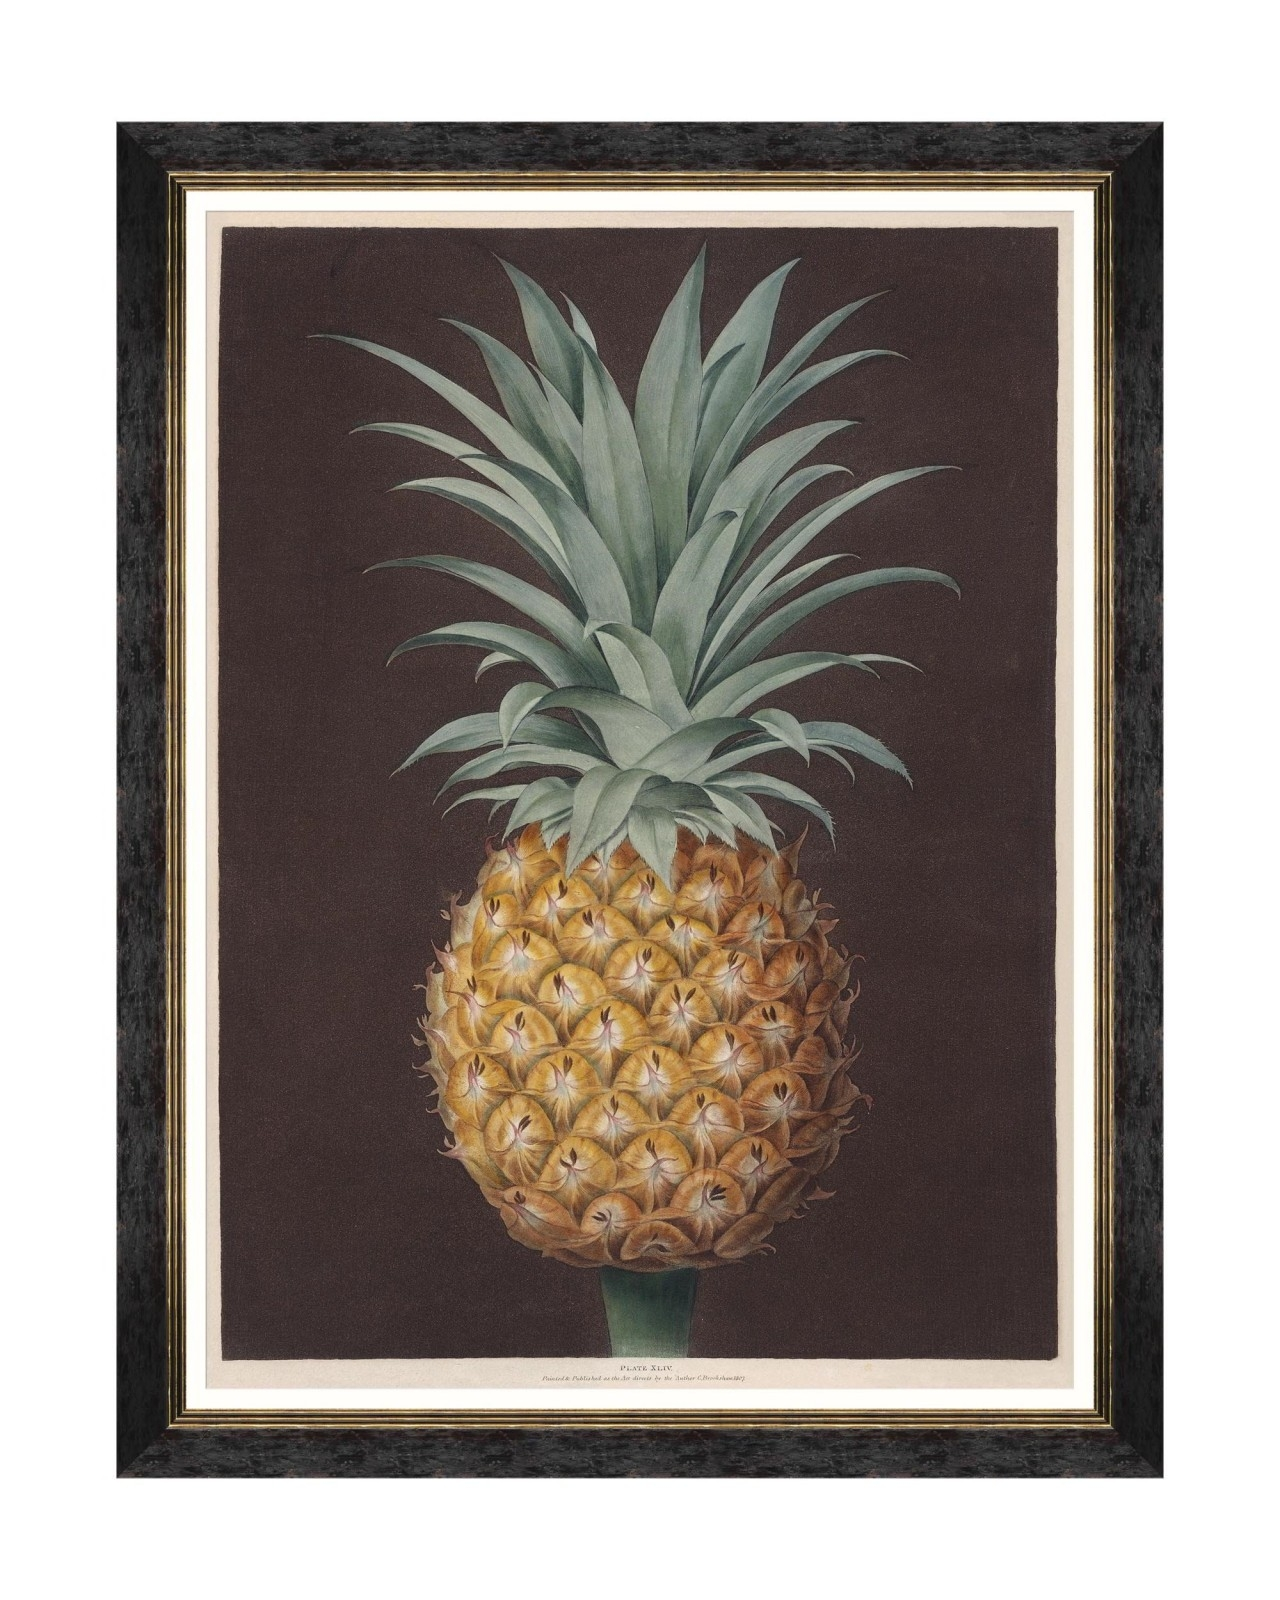 Tablou Framed Art Pineapples Of Antigua – The Havannah Pine By Brookshaw, 60 x 80 cm